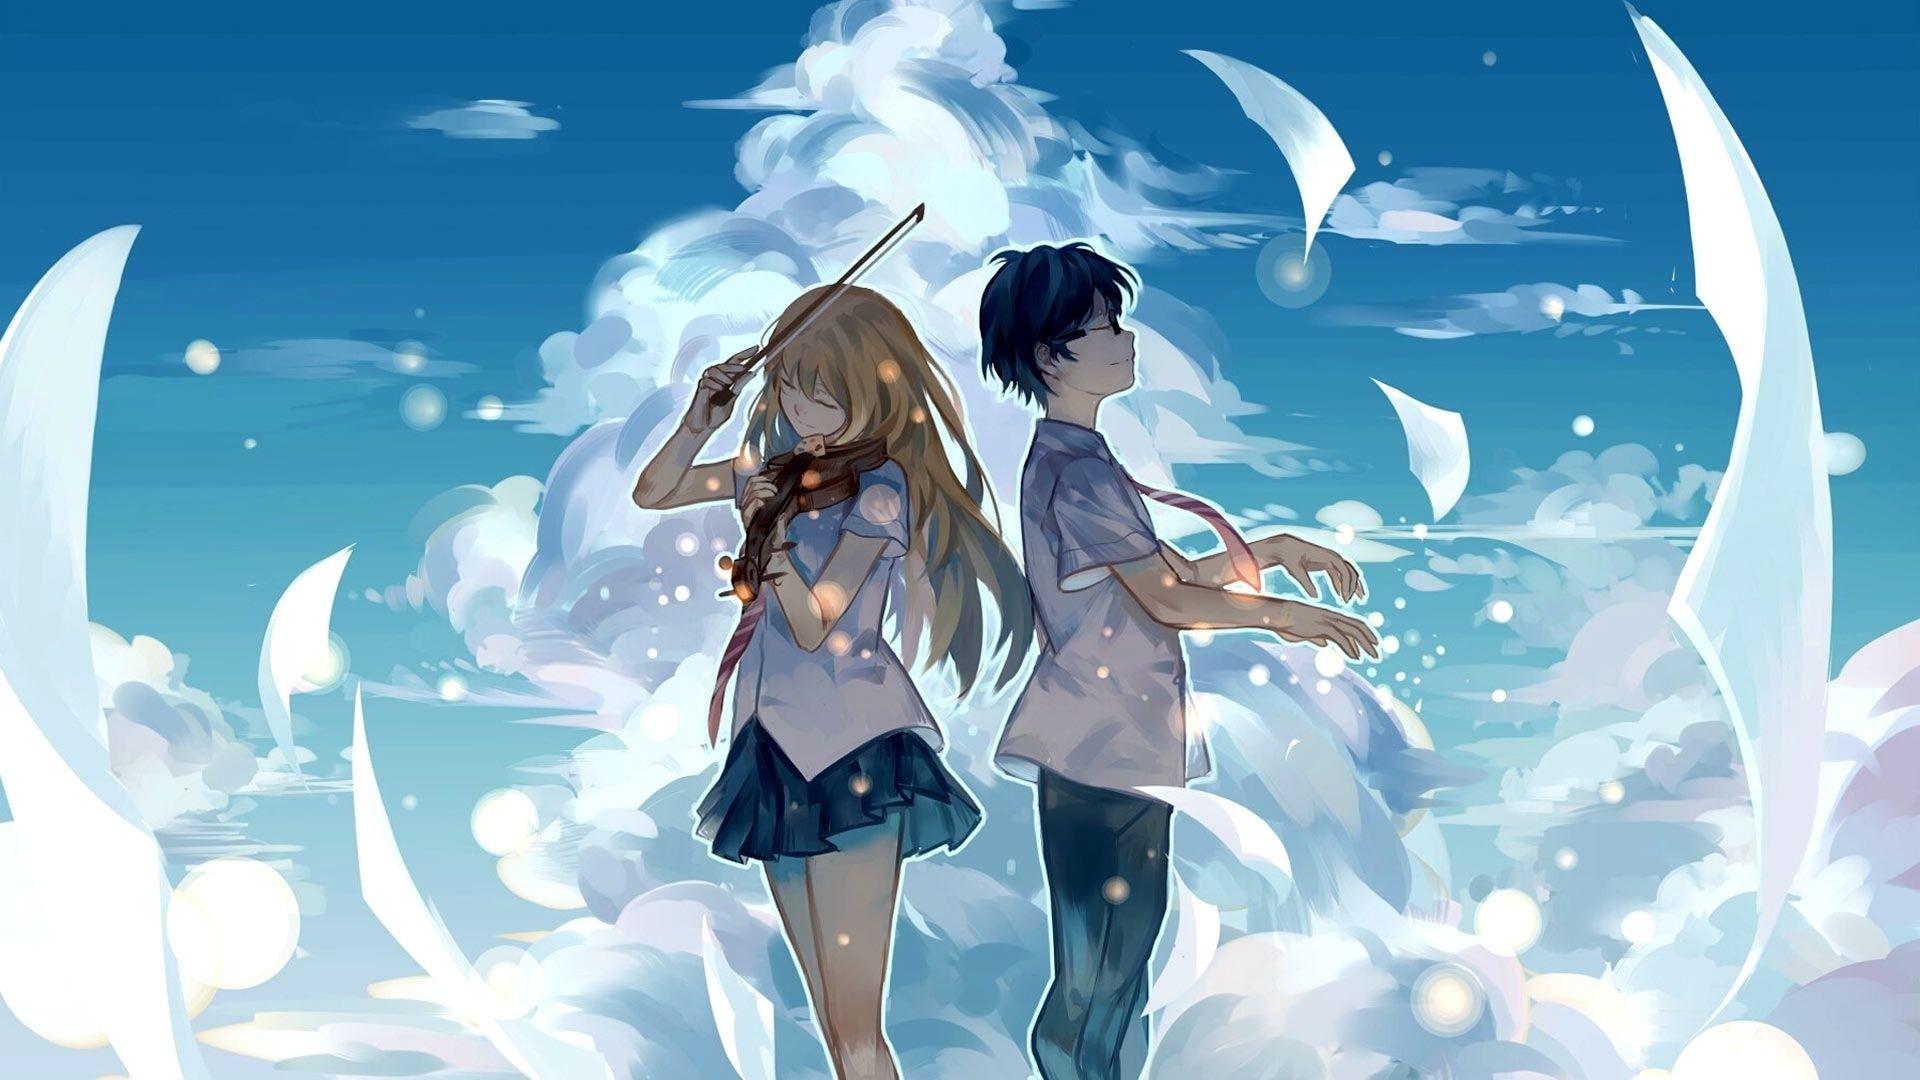 Download Anime Wallpaper Posted By Zoey Cunningham